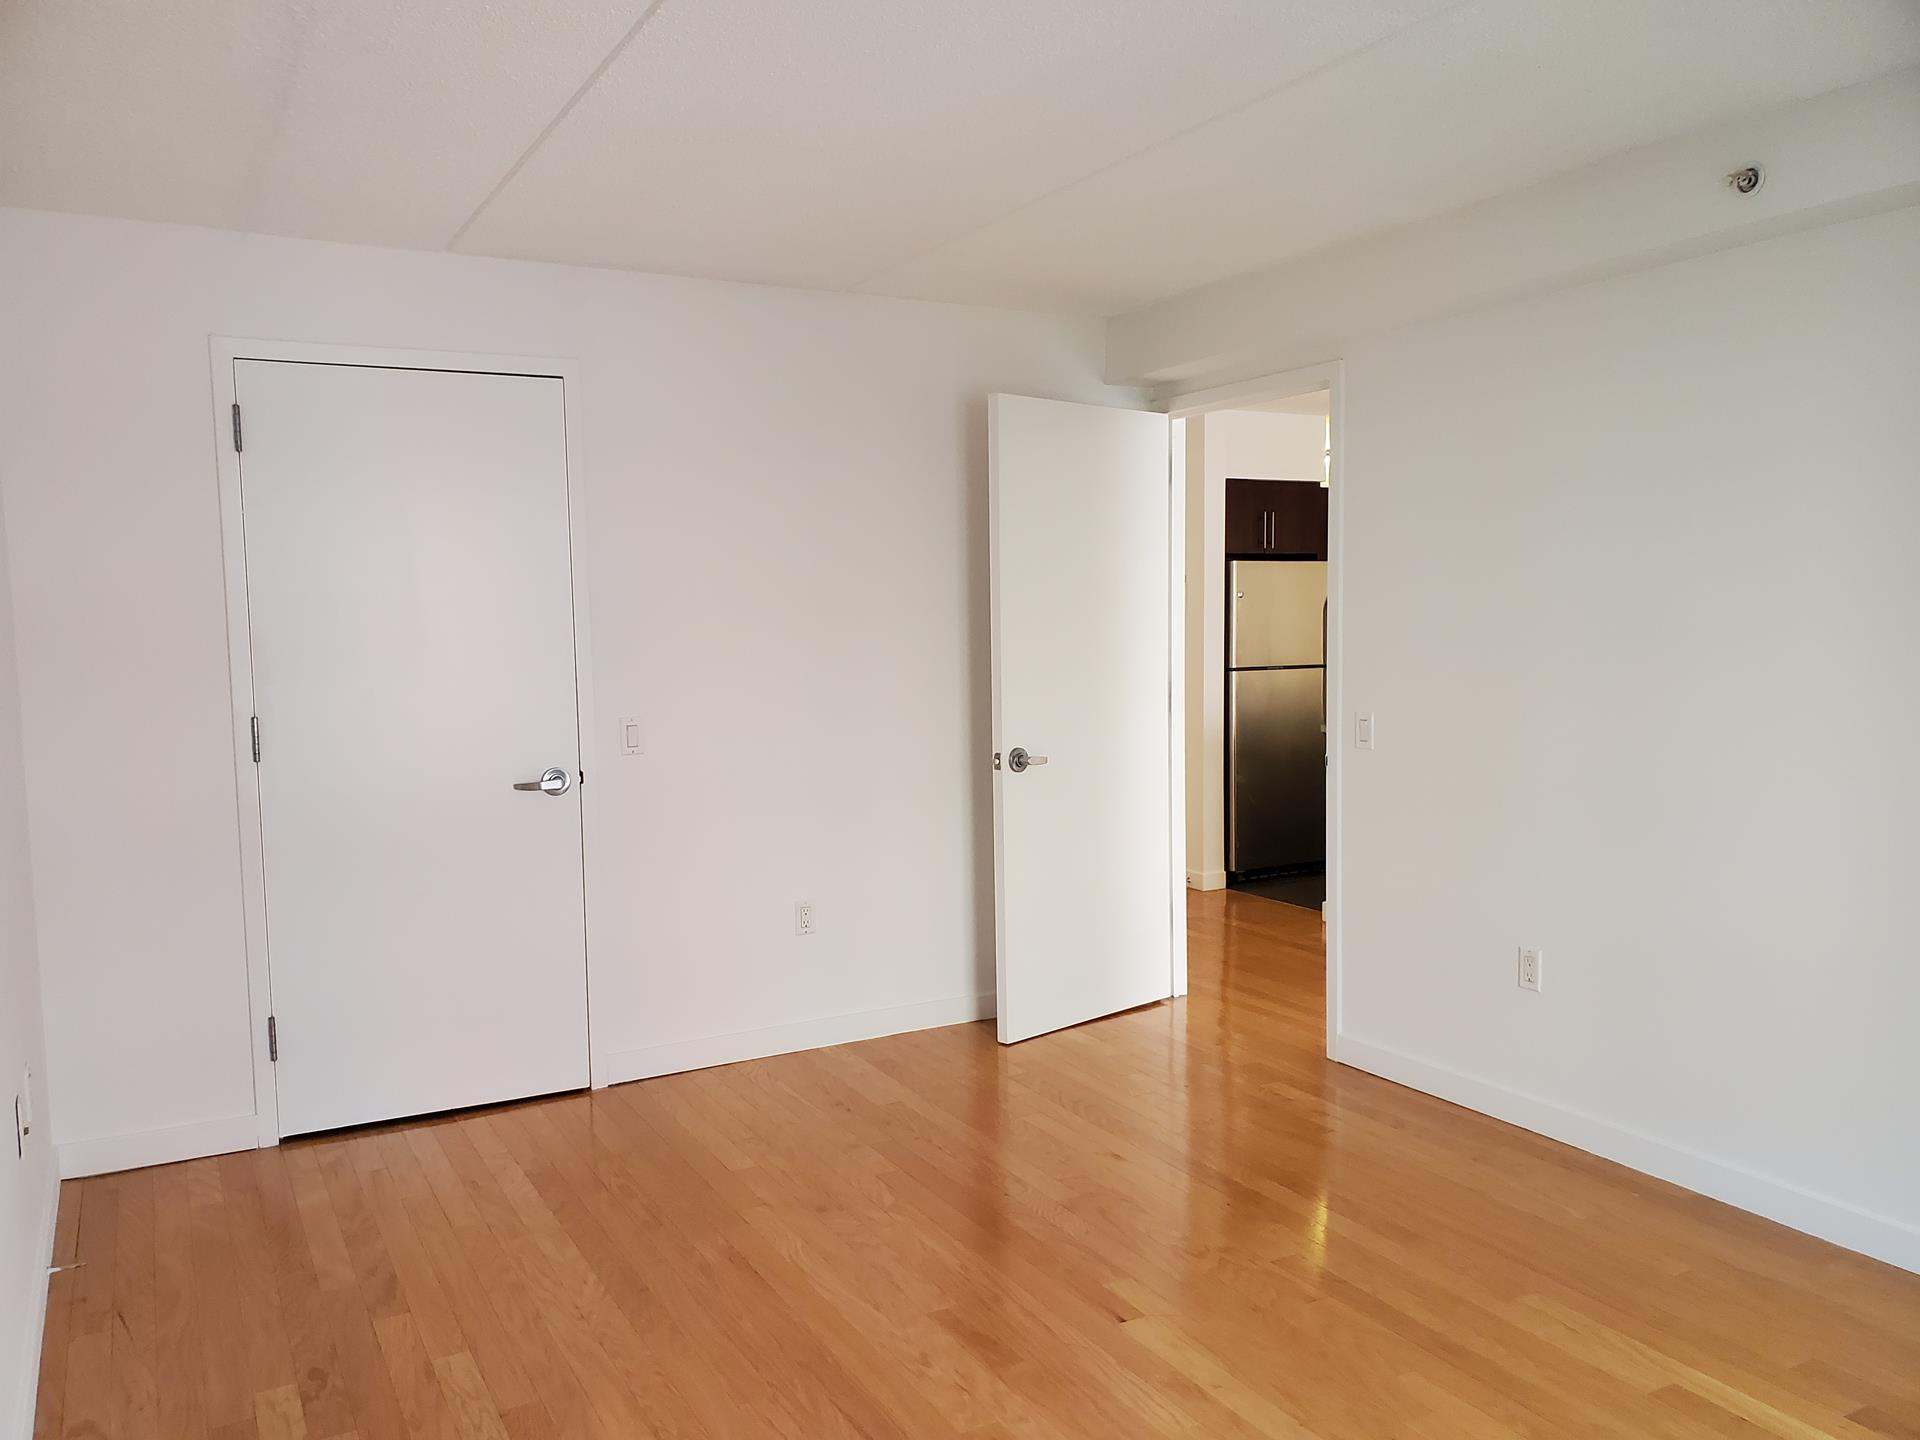 This bright and spacious huge one bedroom home is located in a 24-hour, full-service doorman building in prime West Chelsea.  When you enter the building, you are greeted with a doorman/concierge, waiting area that proceeds to the elevators and a soothing   water fall.   Upon entering into this tranquil apartment, you will be greeted with a large open floor plan. The kitchen features granite countertops, full-size stainless steel appliances, and plenty of storage. Apartment has a washer and dryer in the unit.    There is a lounge area, a full gym and common outside garden area.  This full-service luxury condominium is steps away from the High Line, Hudson River Park as well as Chelsea Piers.  Chelsea has new vibrant galleries, tons of new great restaurants are there   to explore.    Welcome to your new home!